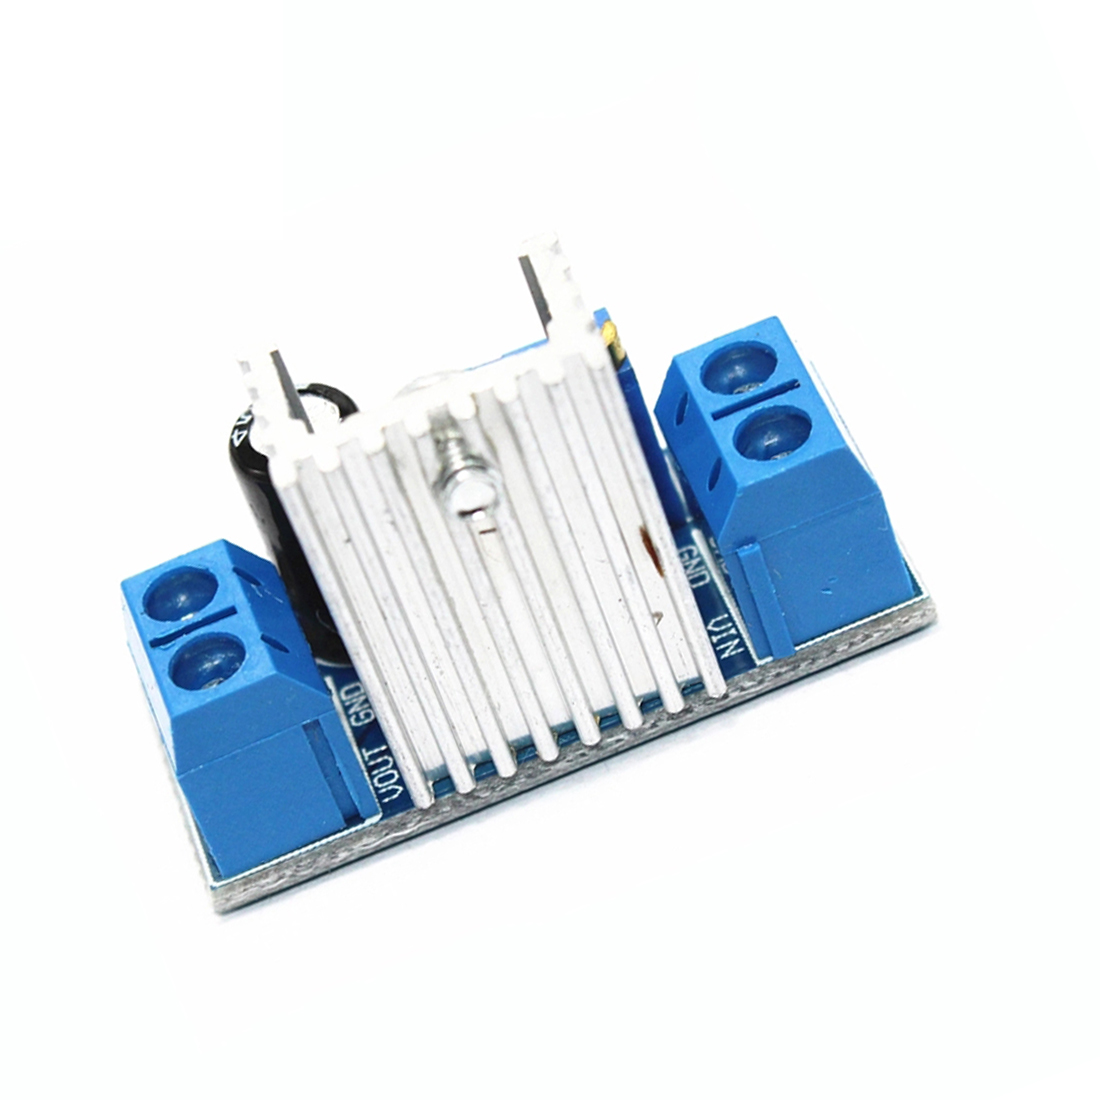 1/3/5 Pcs LM317 Adjustable Step Down Module Stabilized Voltage Power Supply Module Board DC-DC Linear Voltage Regulator